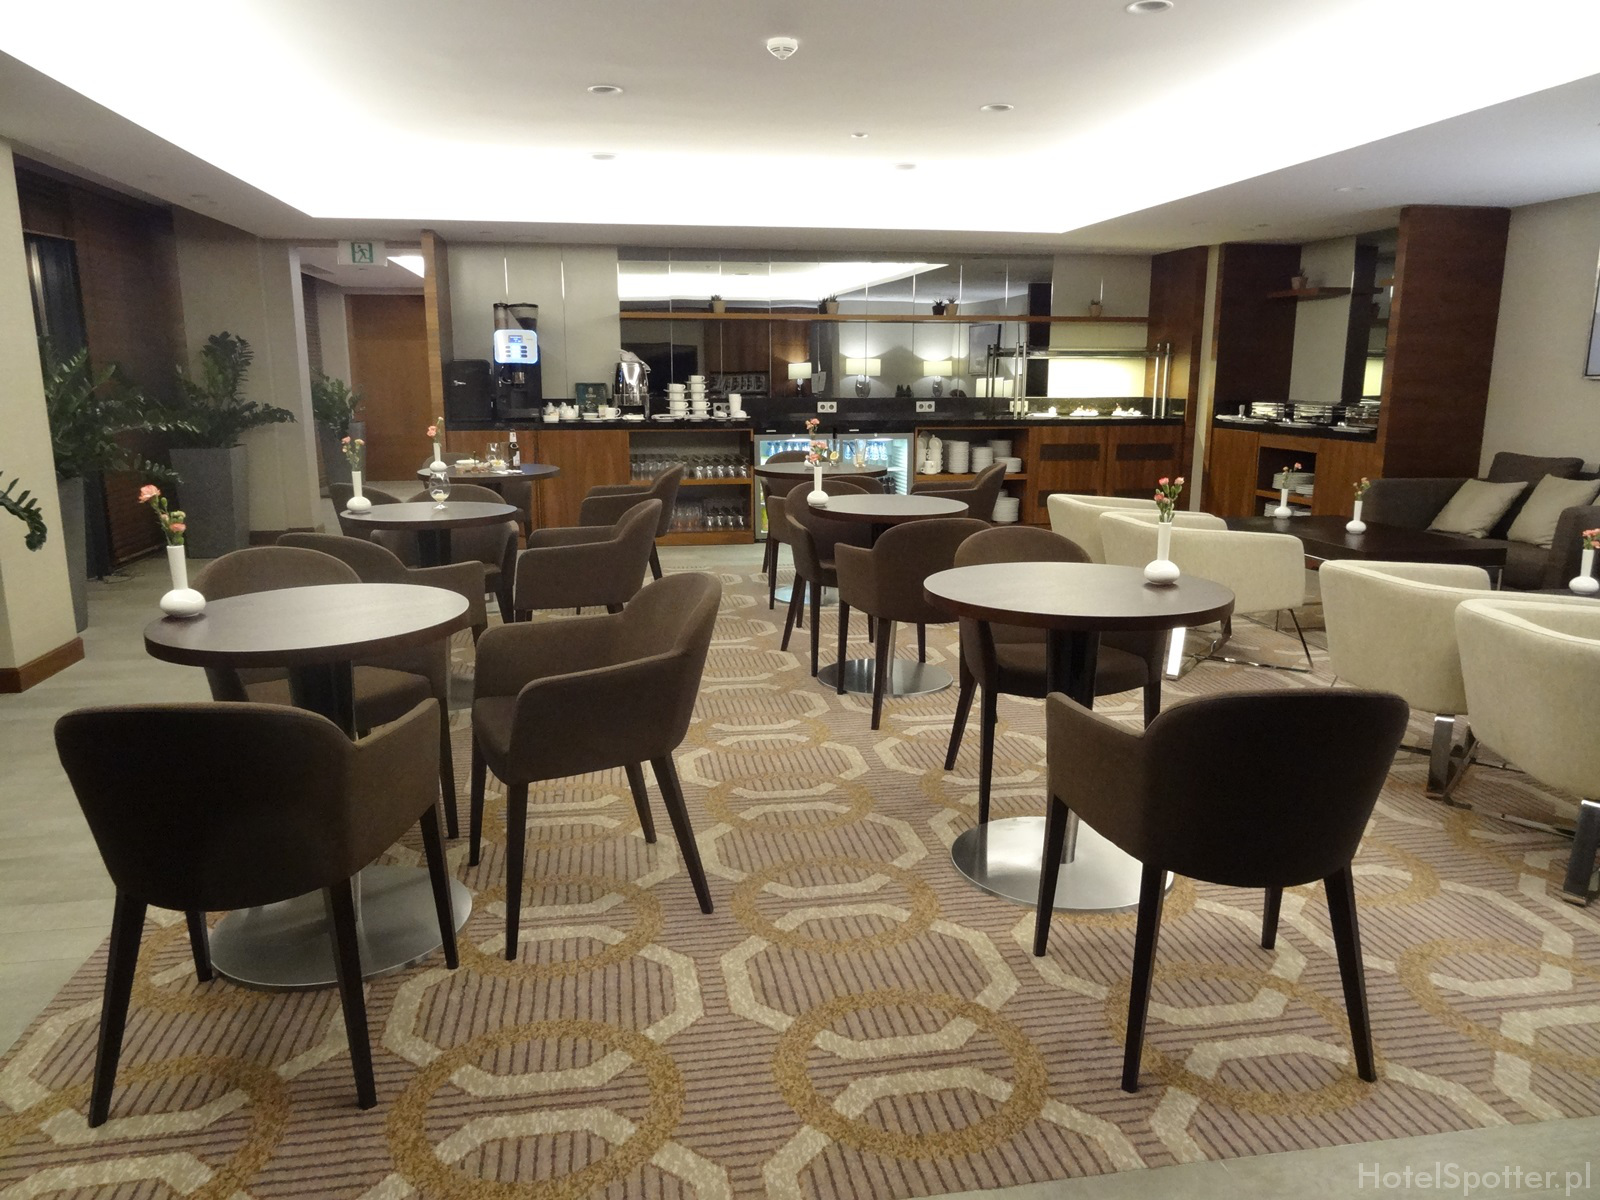 Salonik Executive Lounge w DoubleTree by Hilton Warsaw - wnetrze